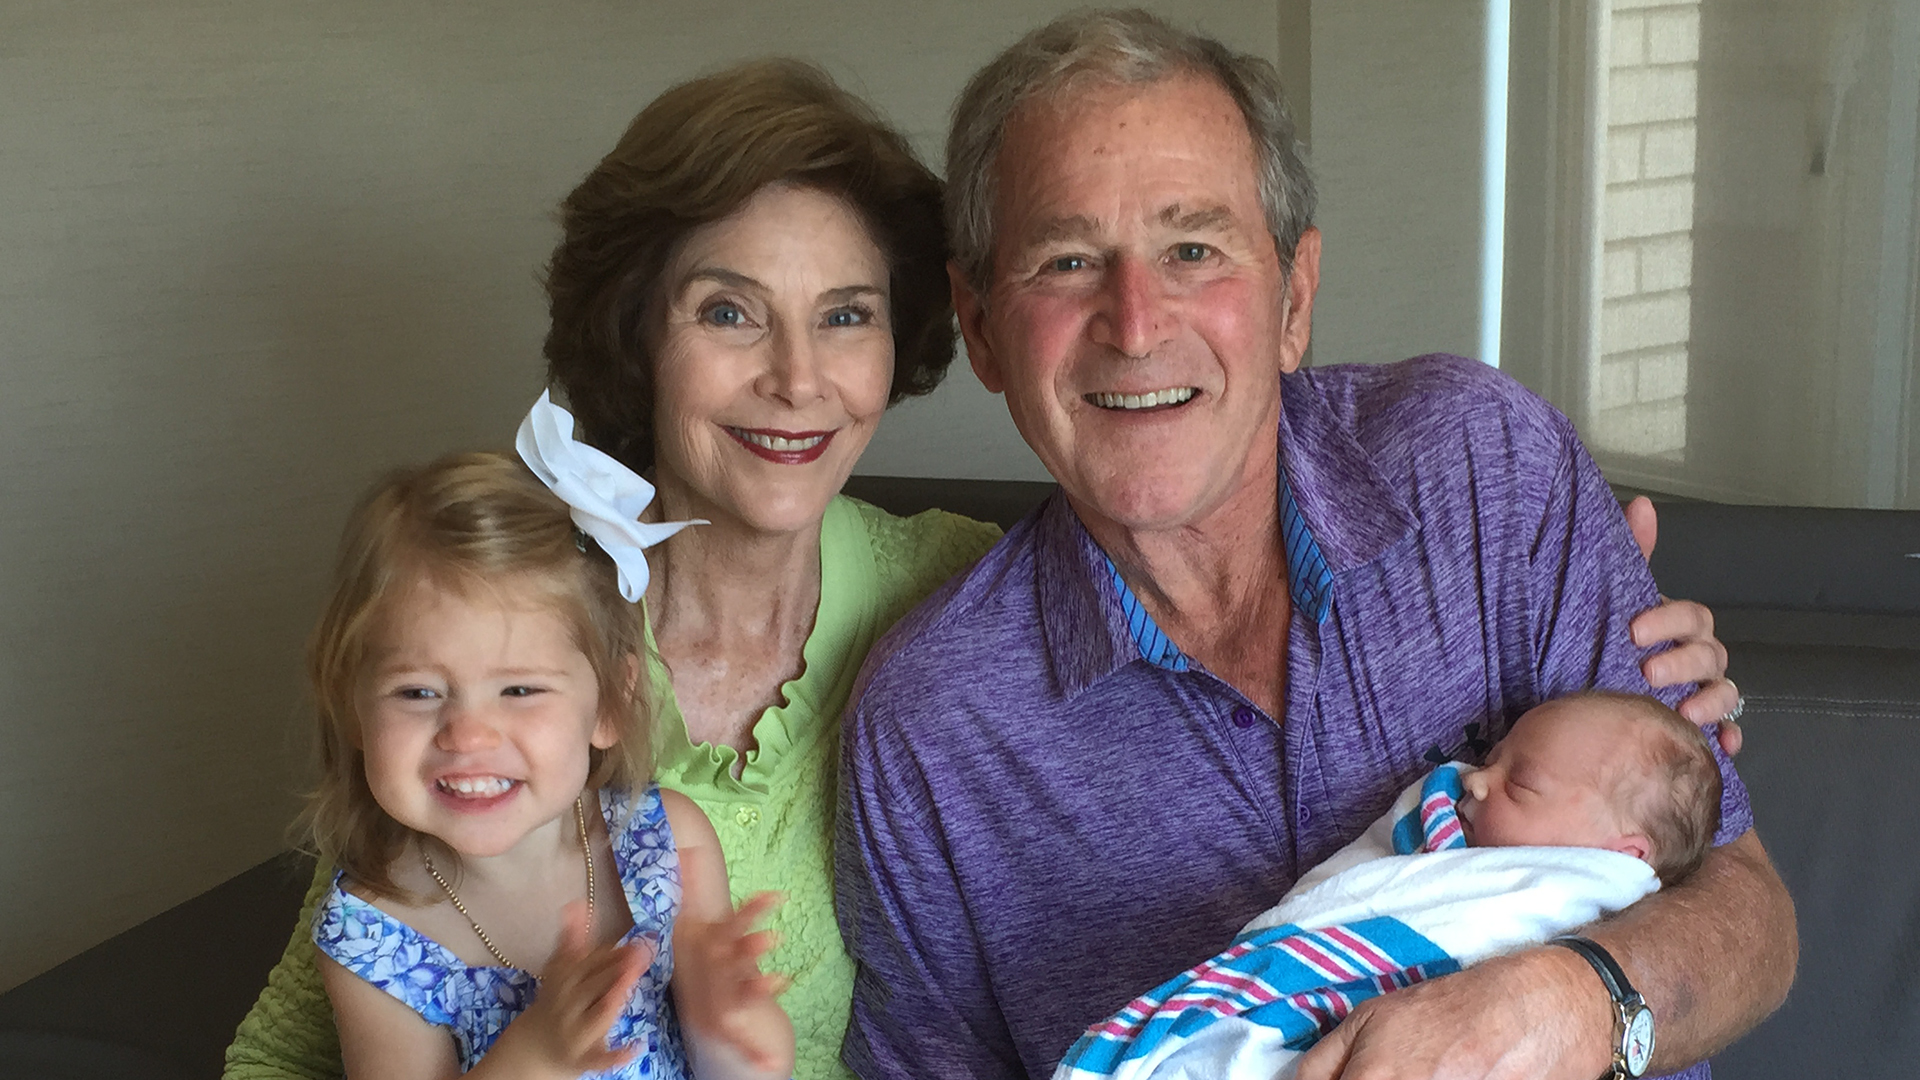 George W Bush Shares Adorable Photo Of Meeting His Granddaughter Photo